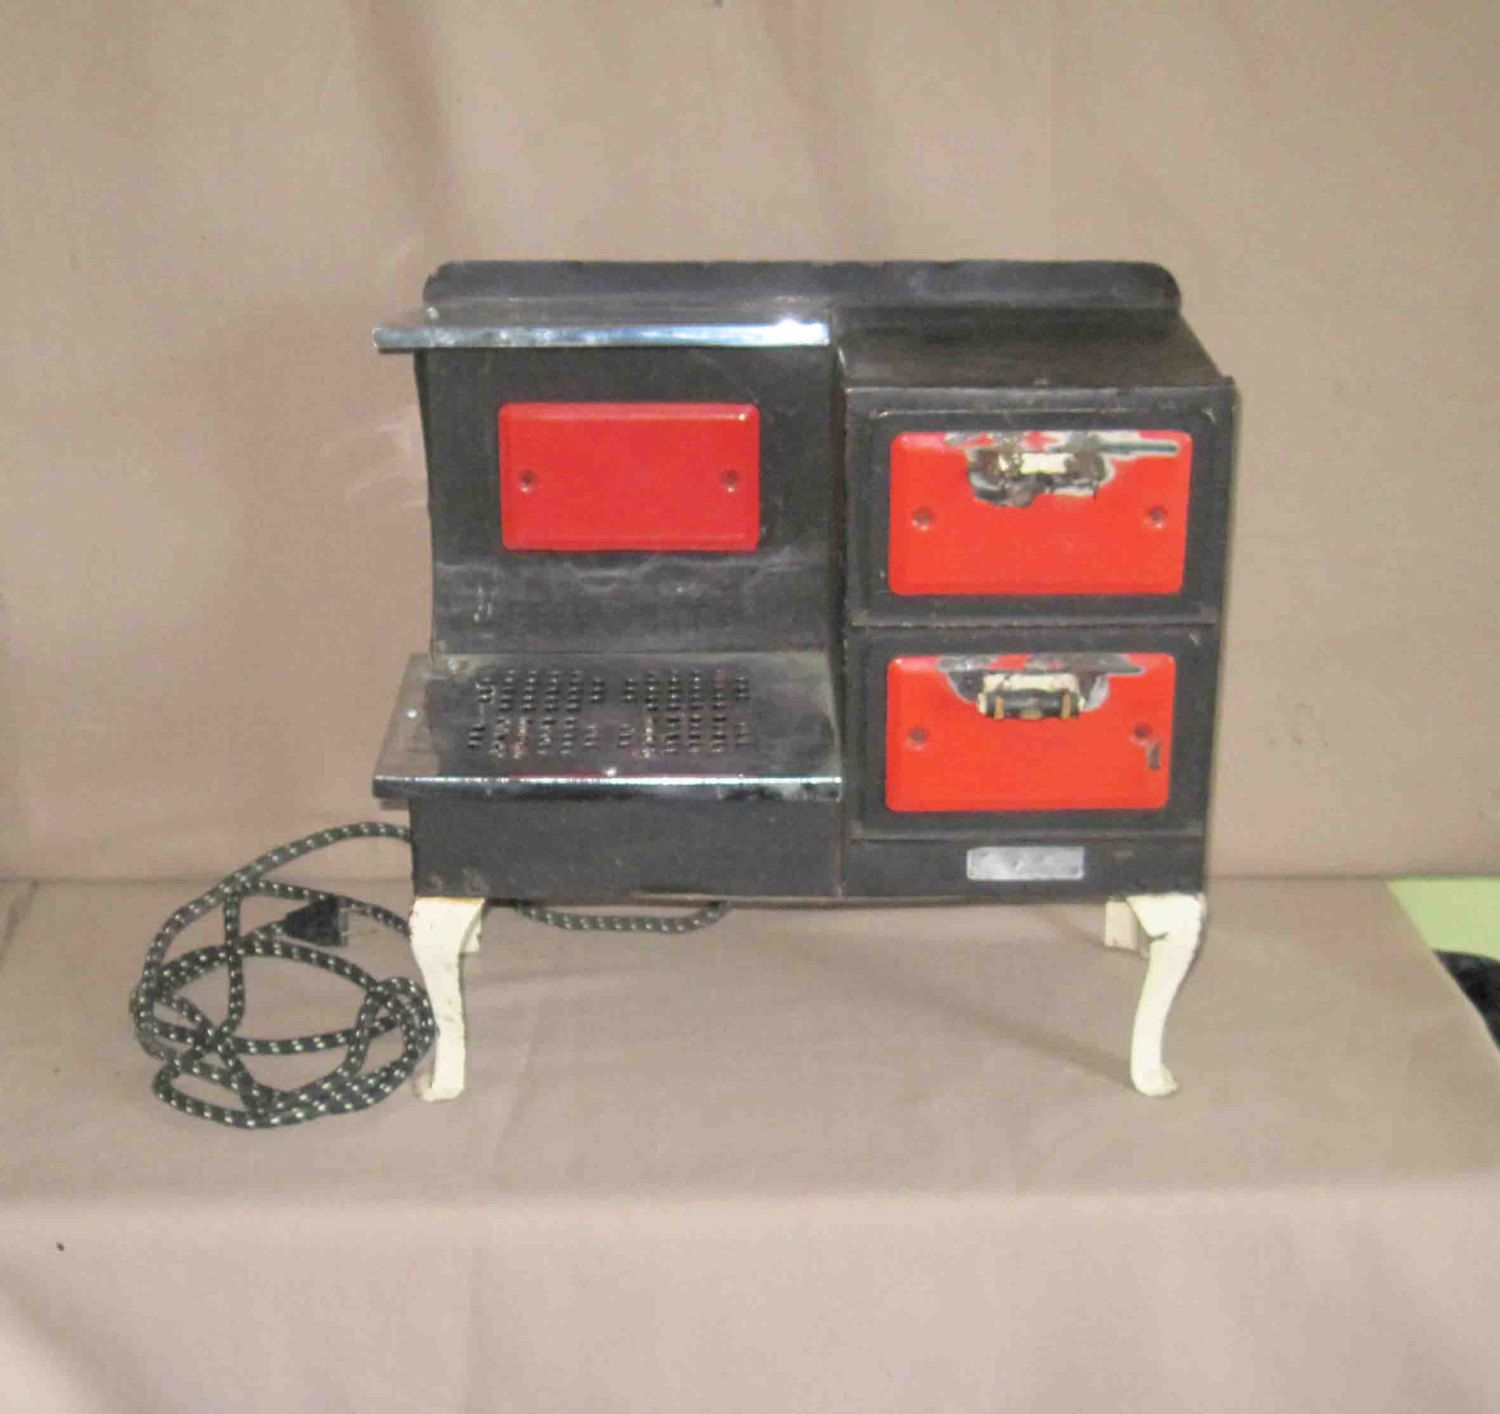 Vintage Empire Electric Toy Stove Double Ovens Stove Top Works 1930s Made In Usa Metal Ware Corp Wis Volts 110 W Double Oven Stove Old Stove Double Oven